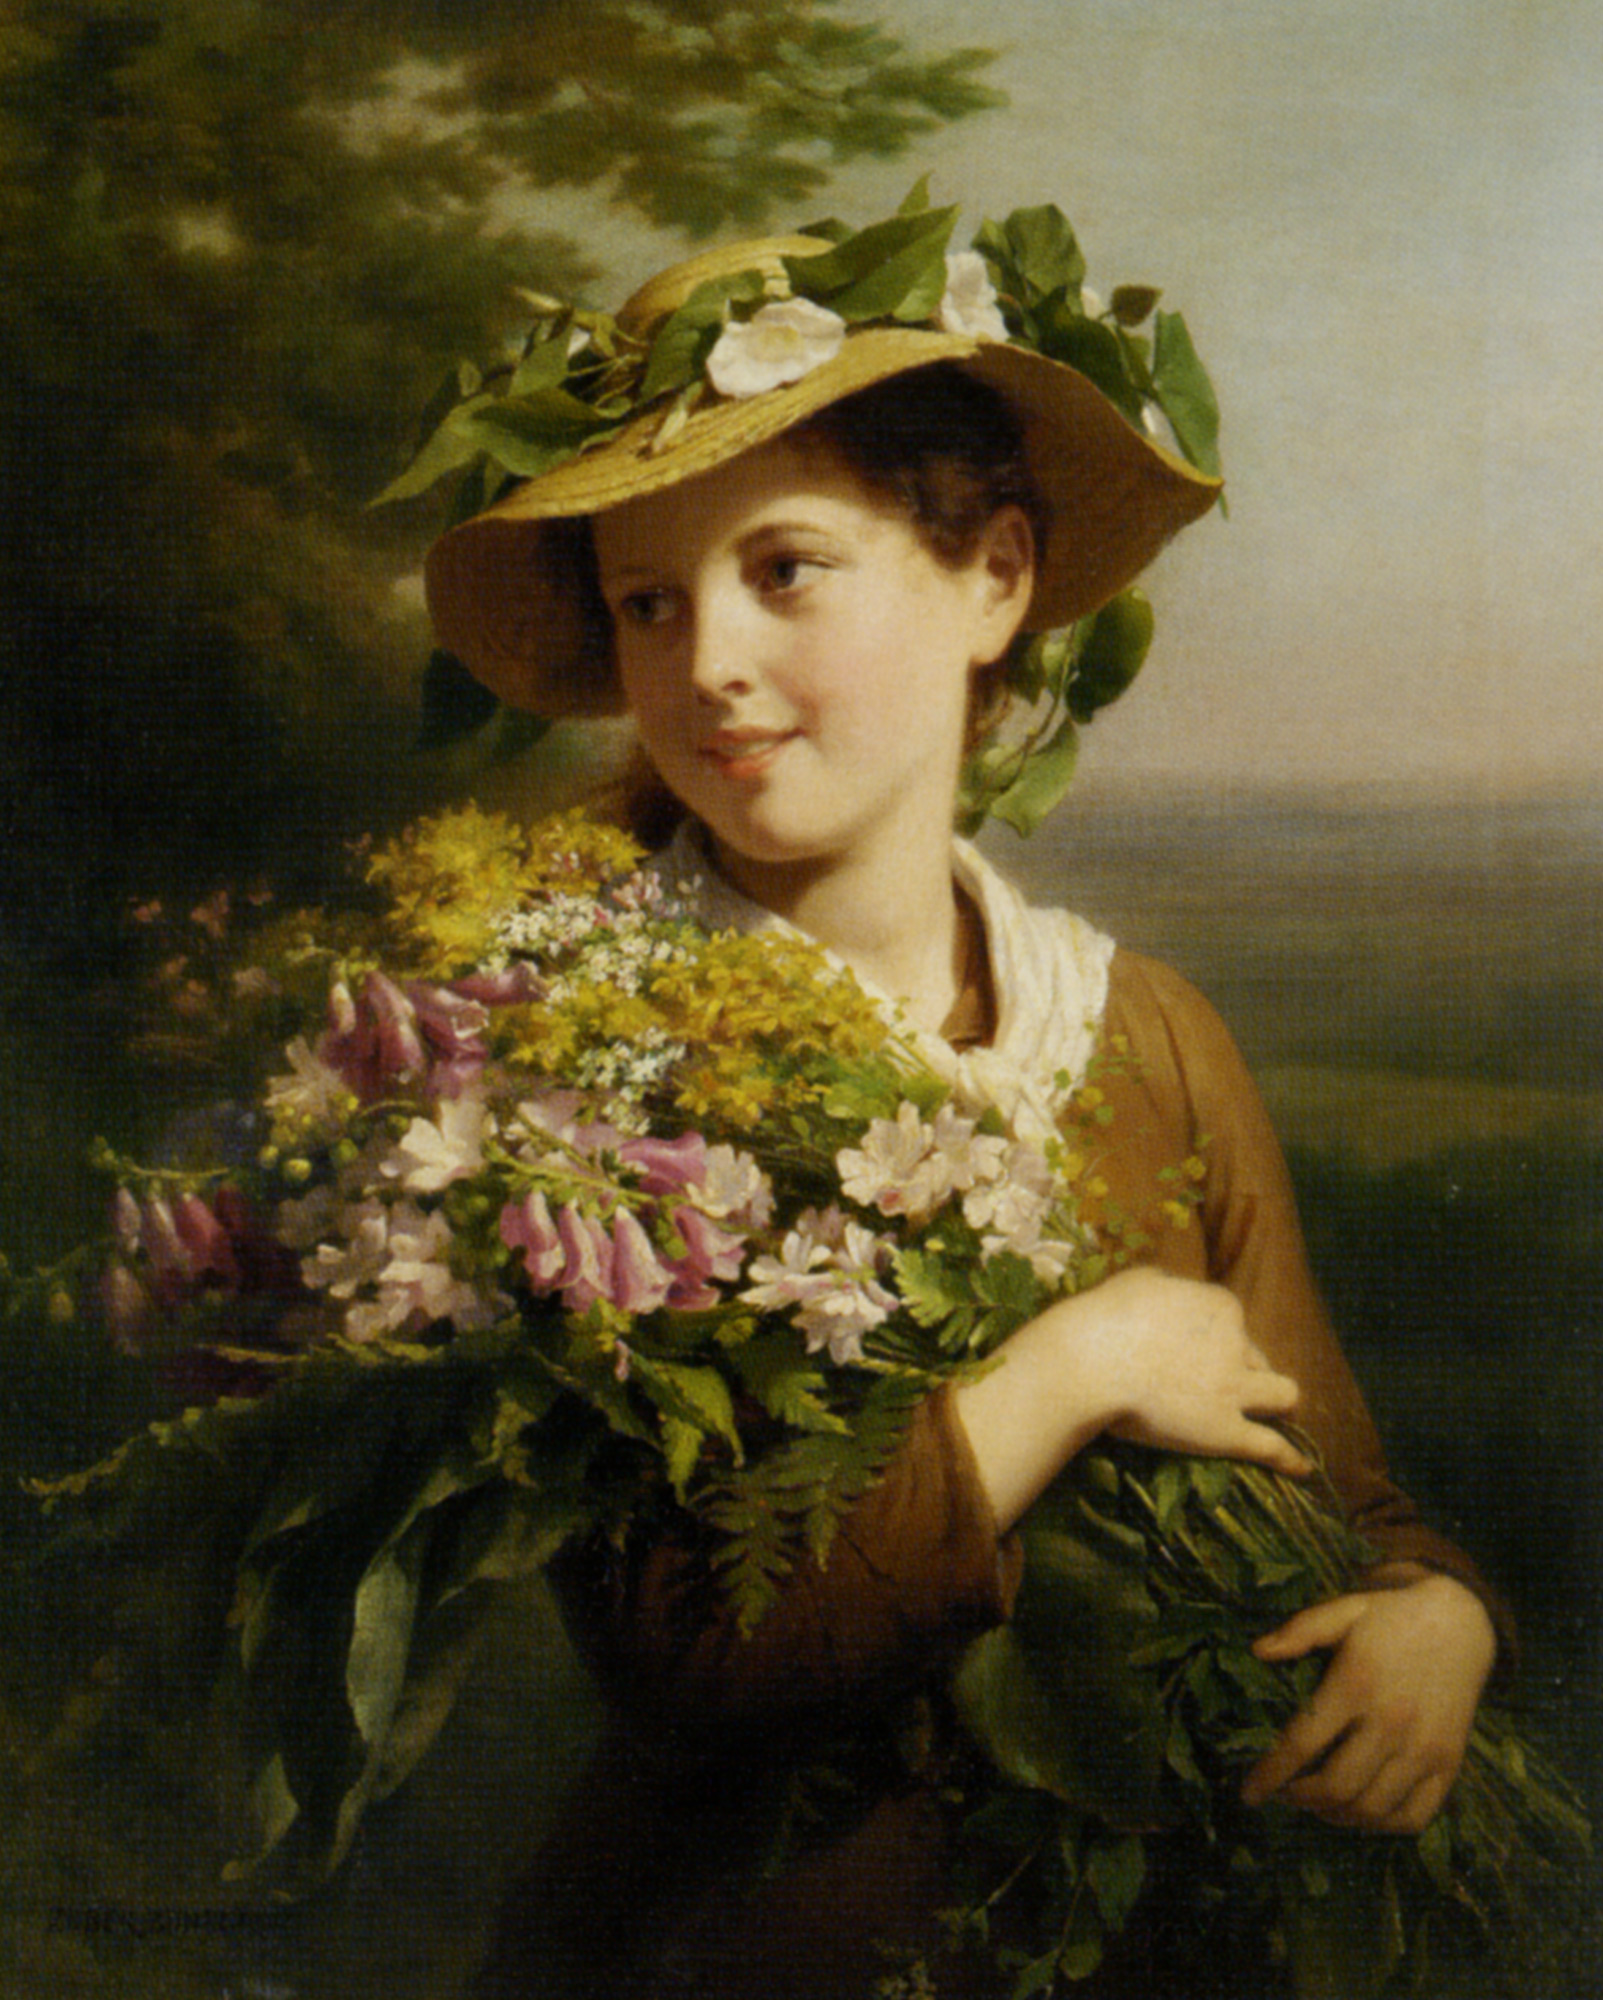 Young Beauty with Bouquet :: Fritz Zuber-Buhler - Young beauties portraits in art and painting ôîòî